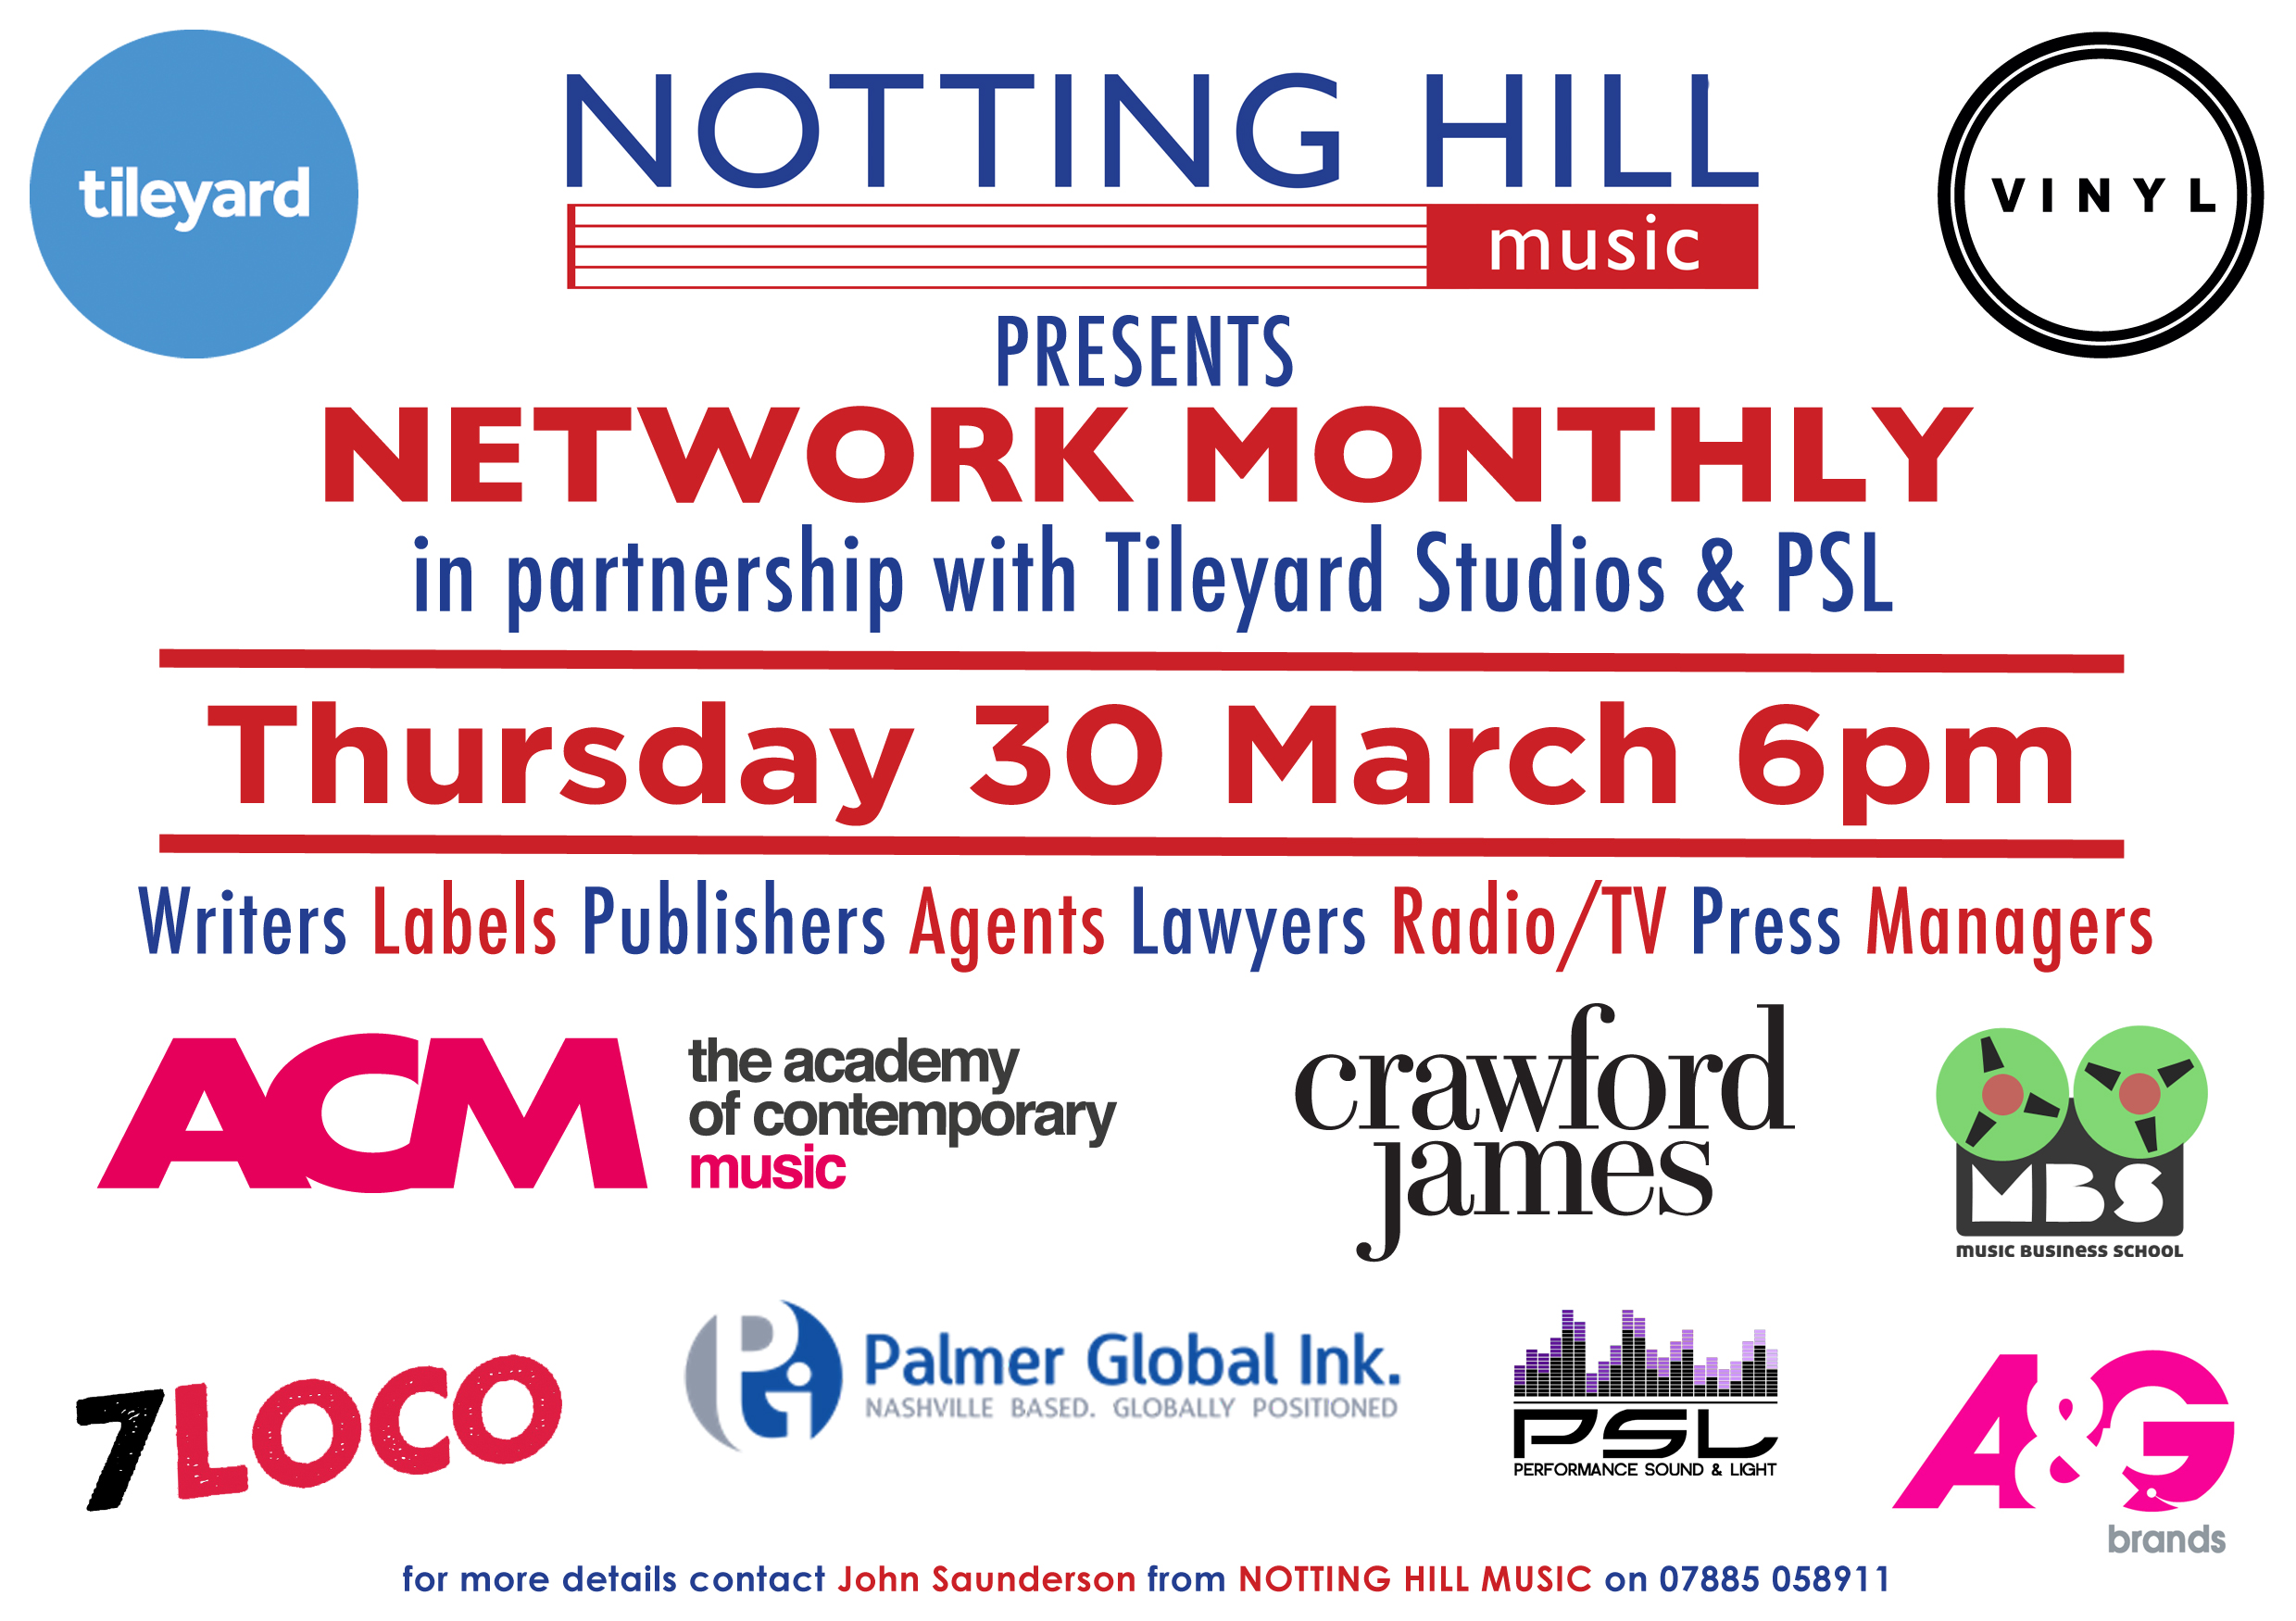 Next Networking event on Thursday 30 March